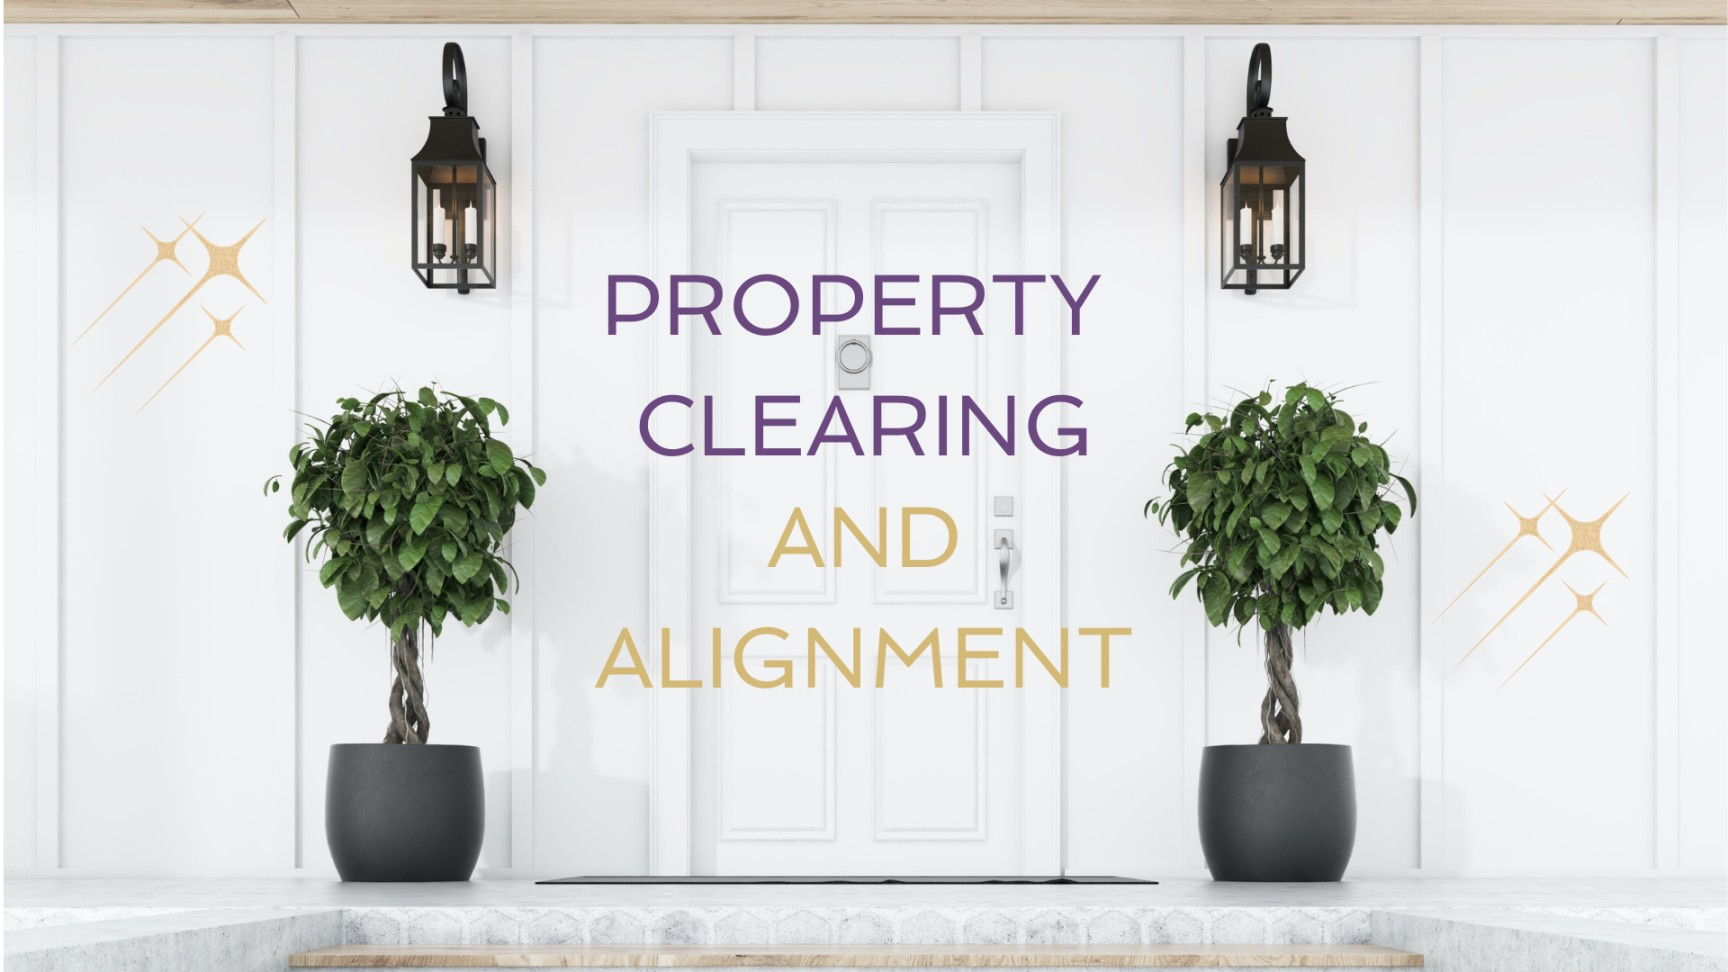 Property Clearing and alignment